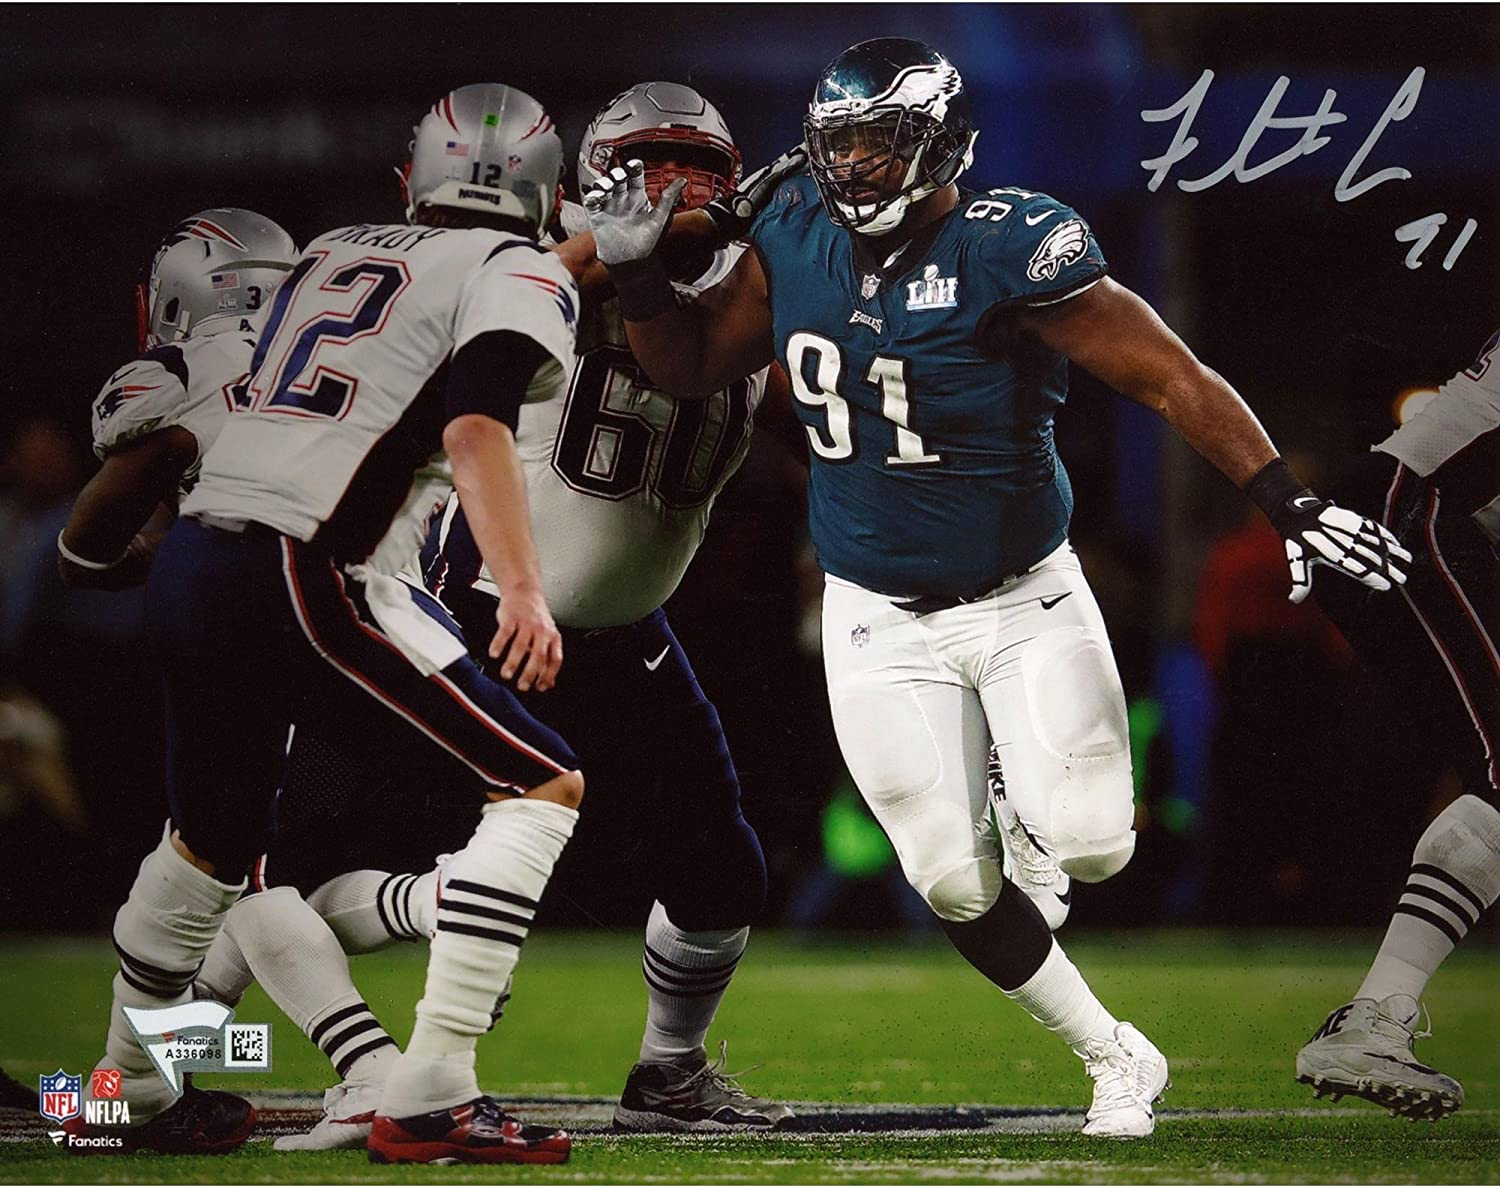 Fletcher Cox Philadelphia Eagles Autographed 8' x 10' Super Bowl LII Champions Photograph - Fanatics Authentic Certified